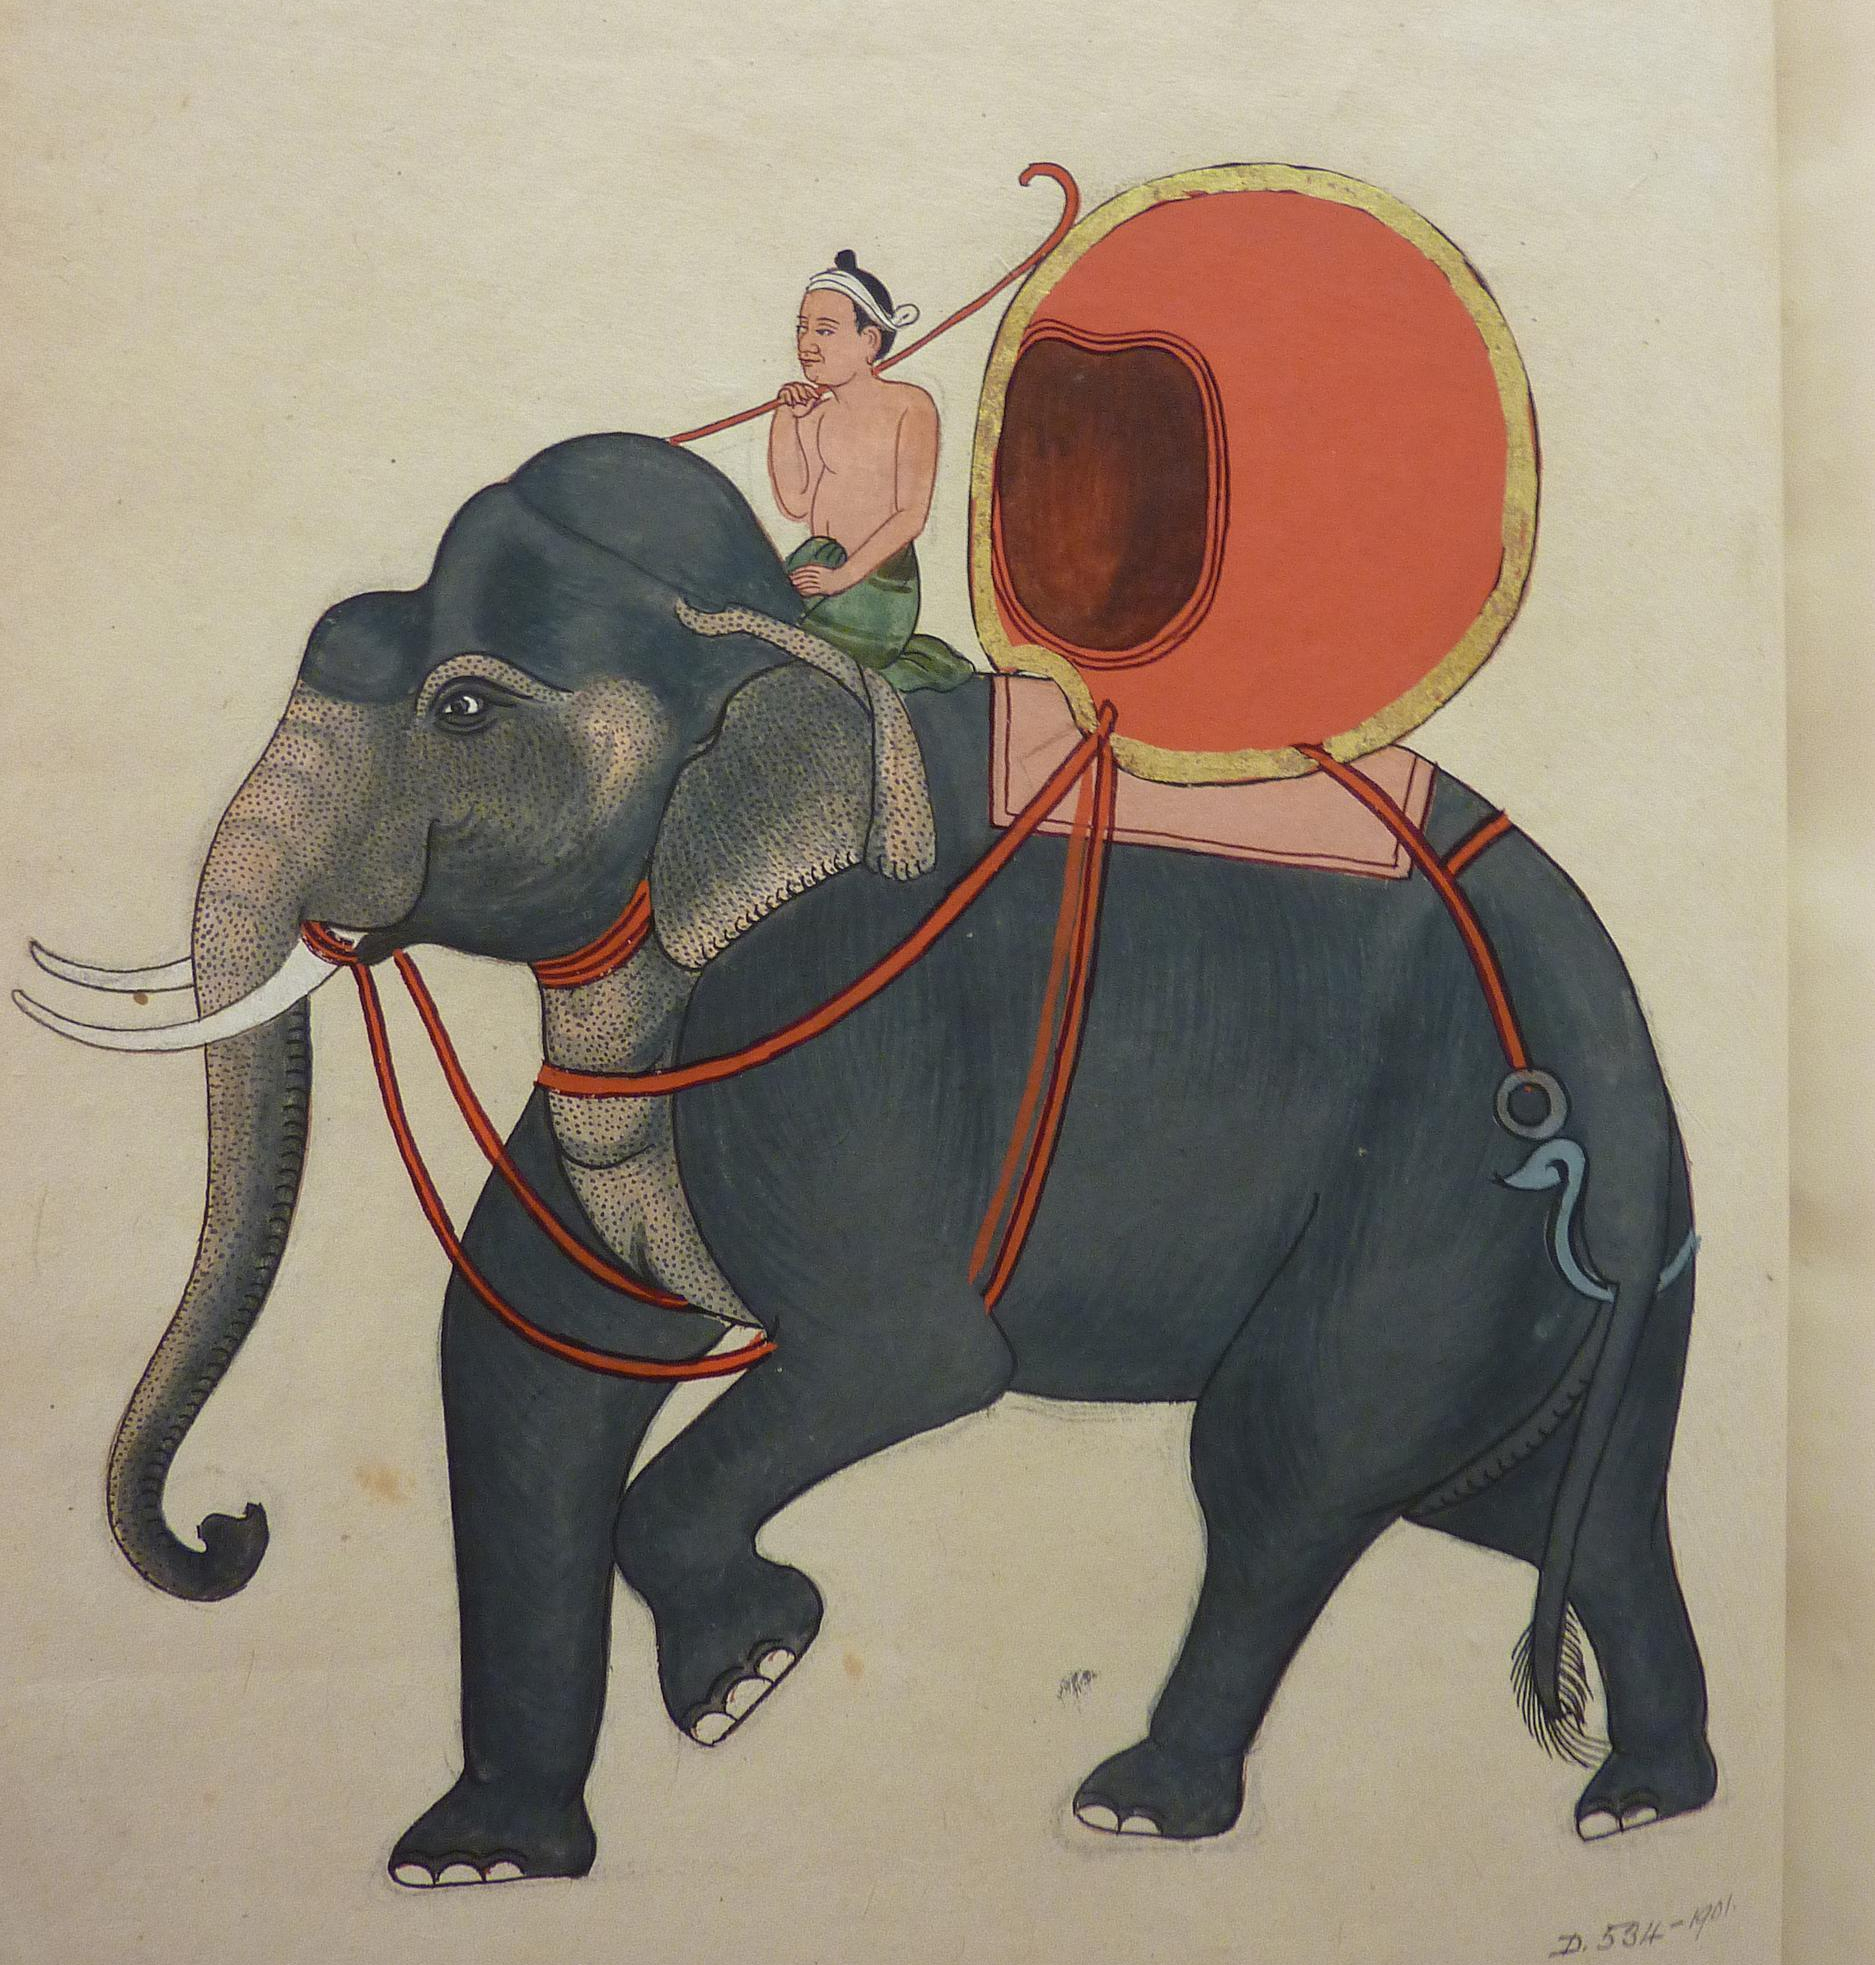 d-534-1901-the-dam-of-the-palaces-elephant.jpg